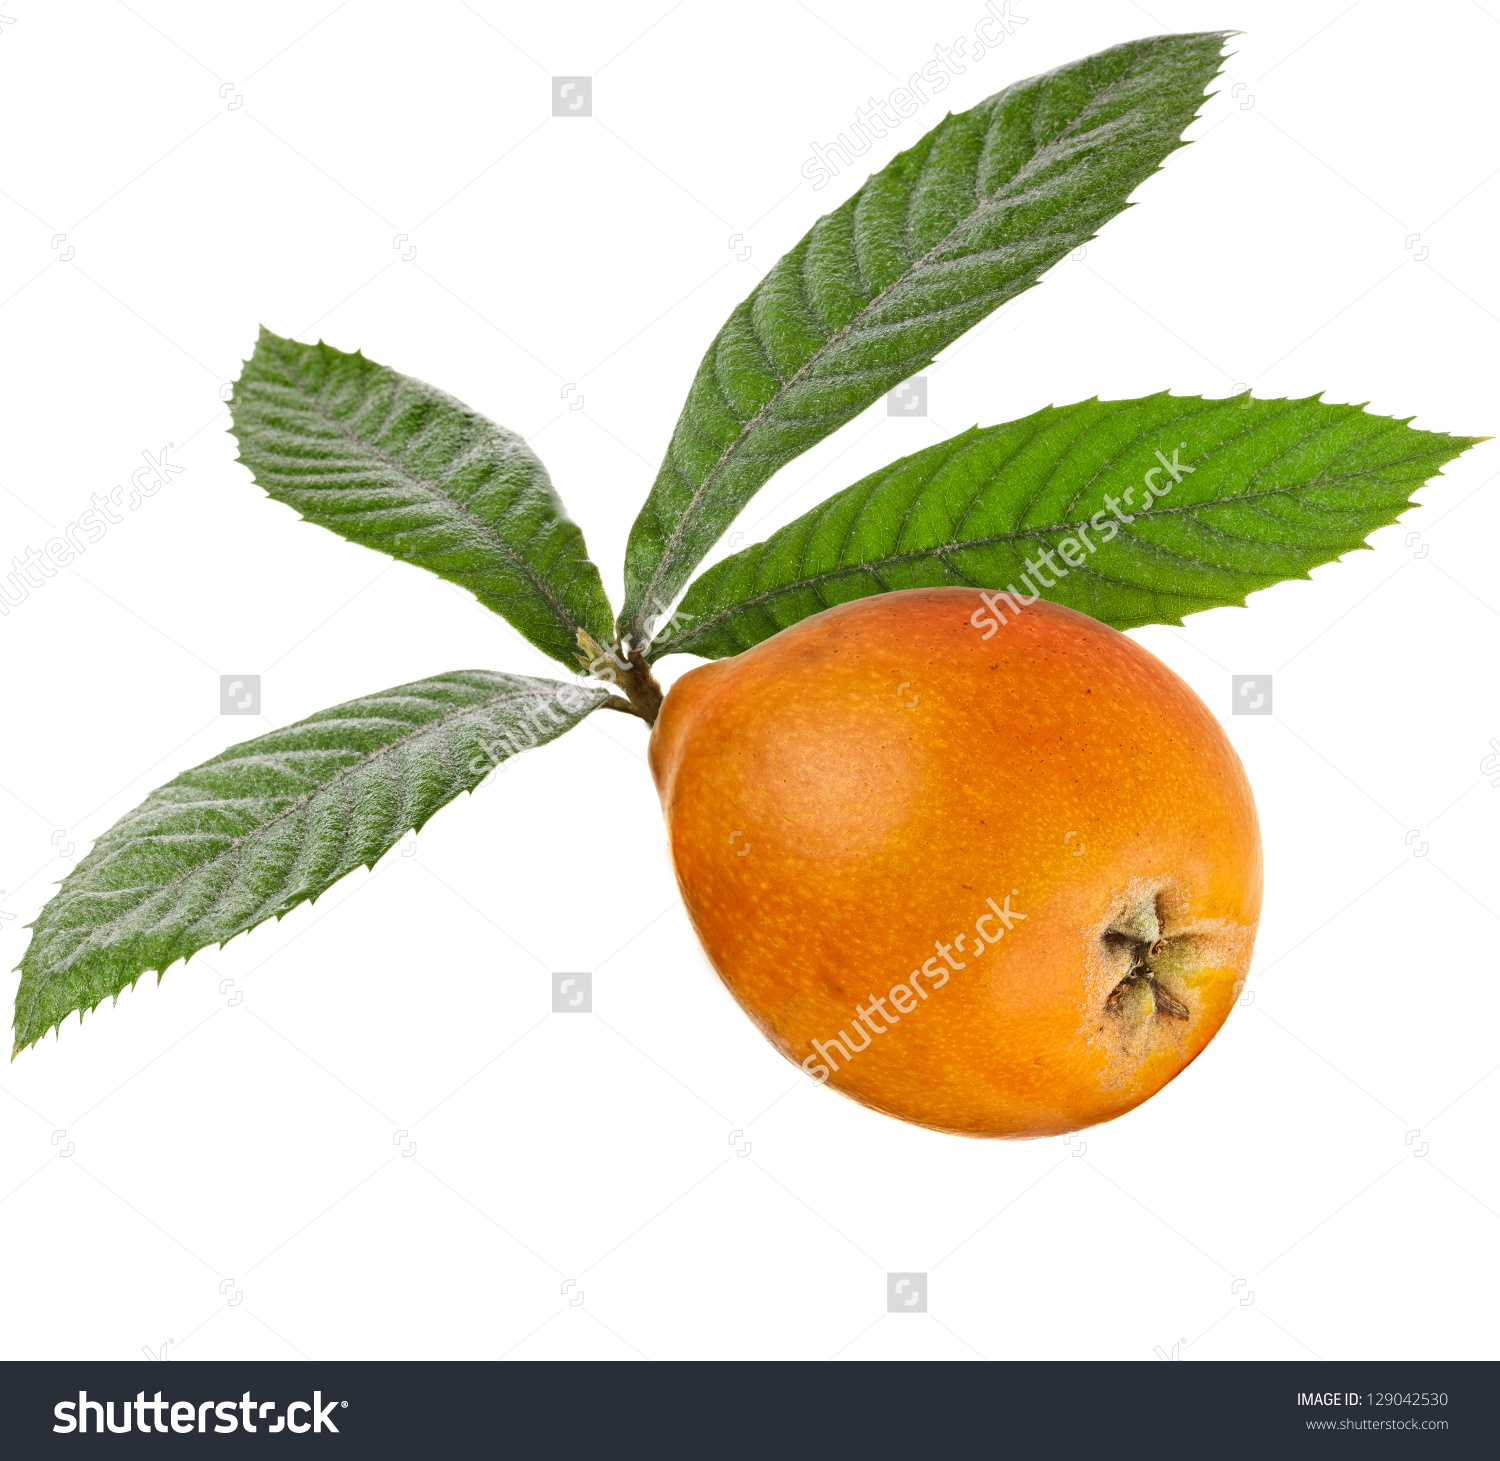 Loquat Berries clipart #1, Download drawings